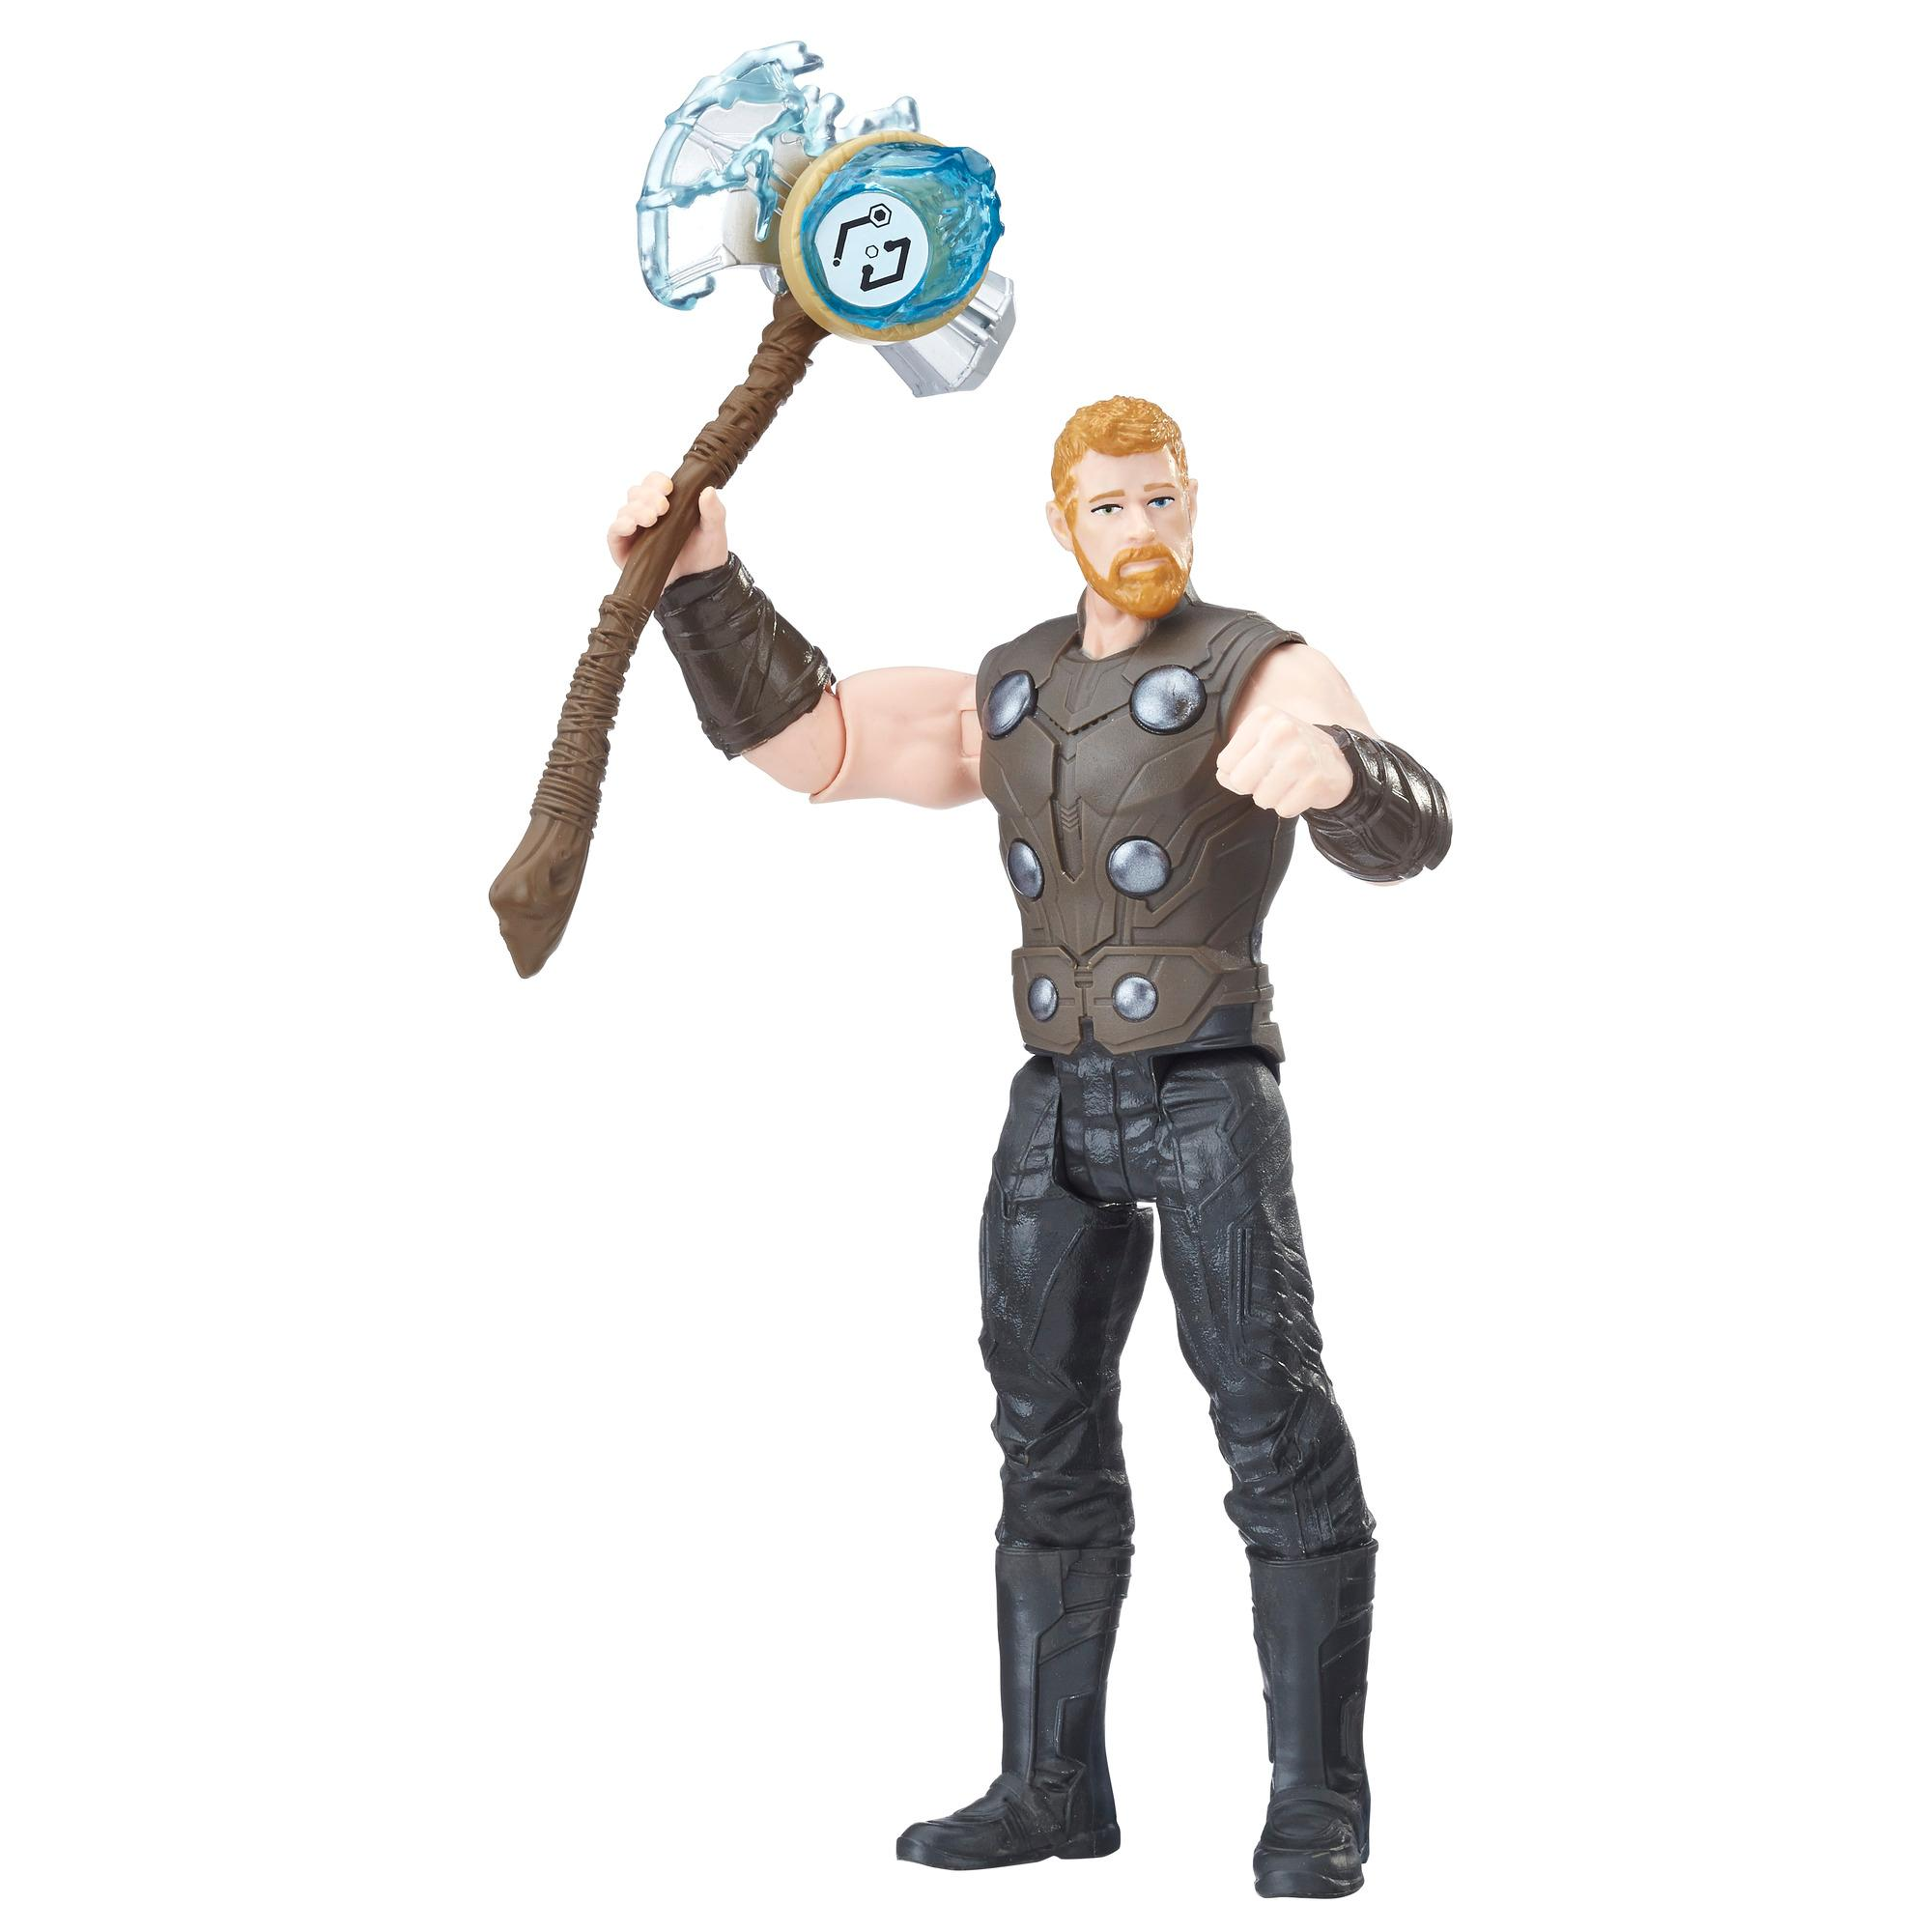 Marvel Avengers: Infinity War Thor with Infinity Stone